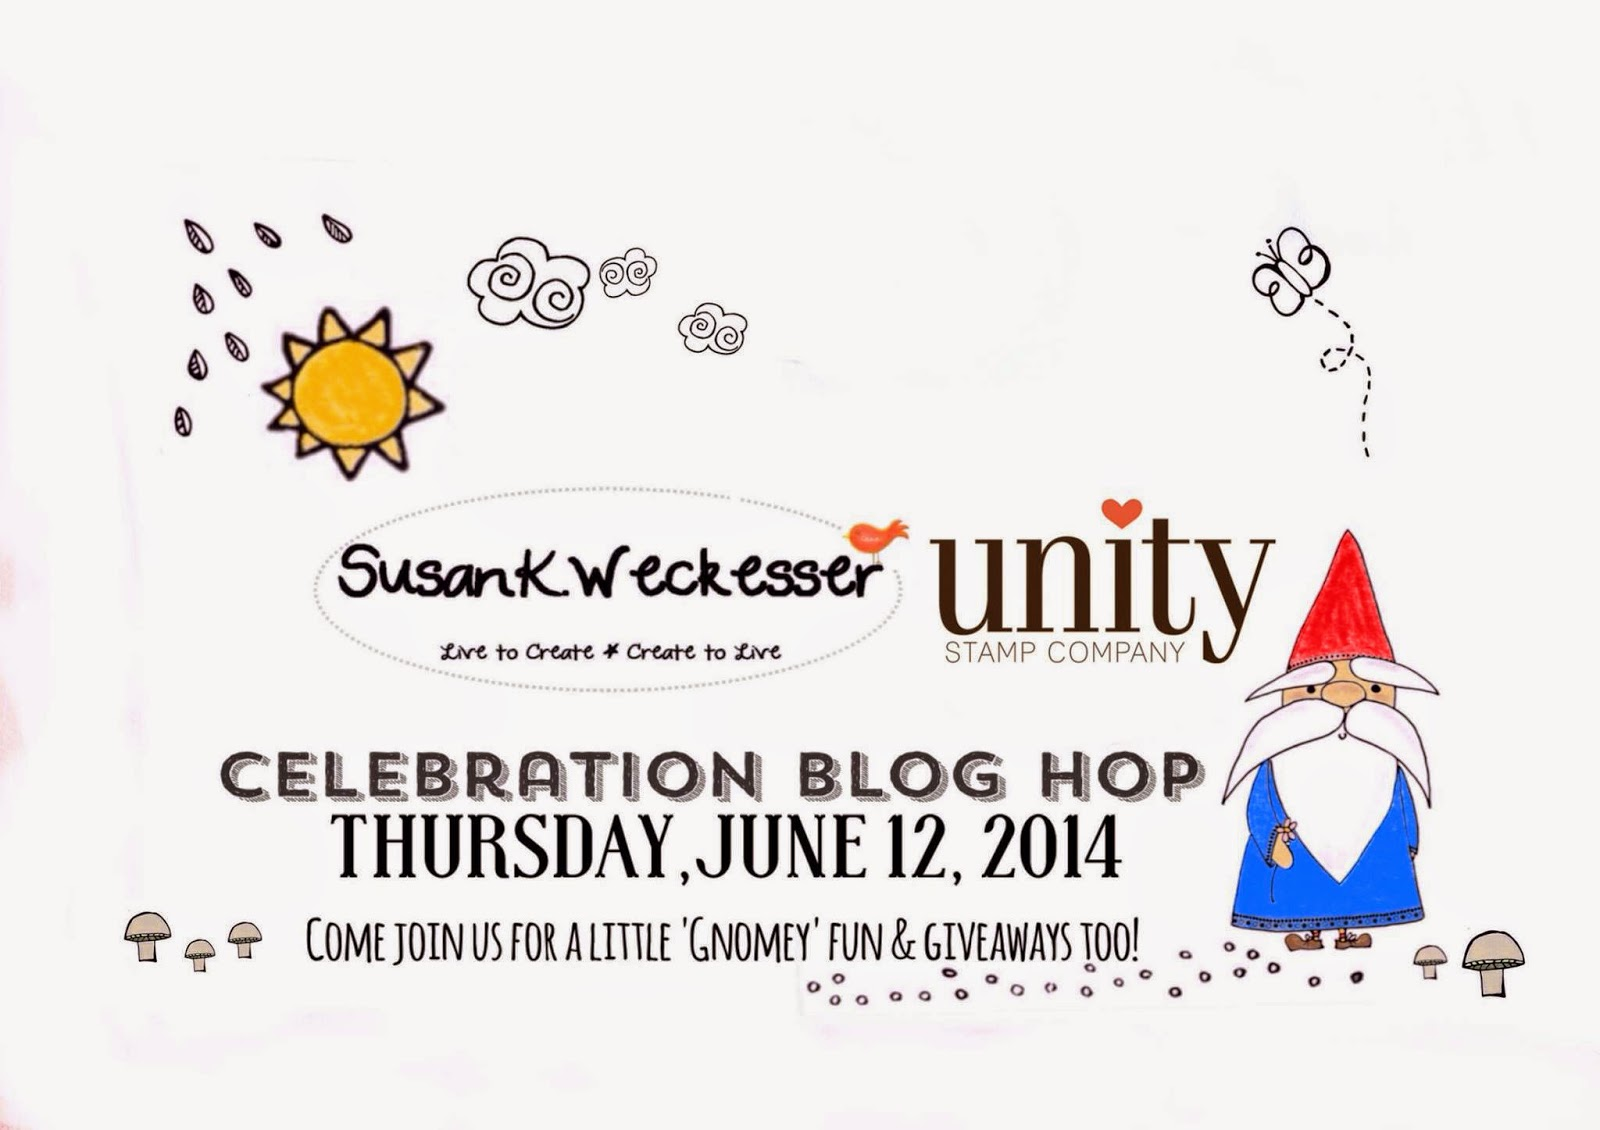 http://mysweetearth.blogspot.com/2014/06/susan-k-weckesser-and-unity-blog-hop.html